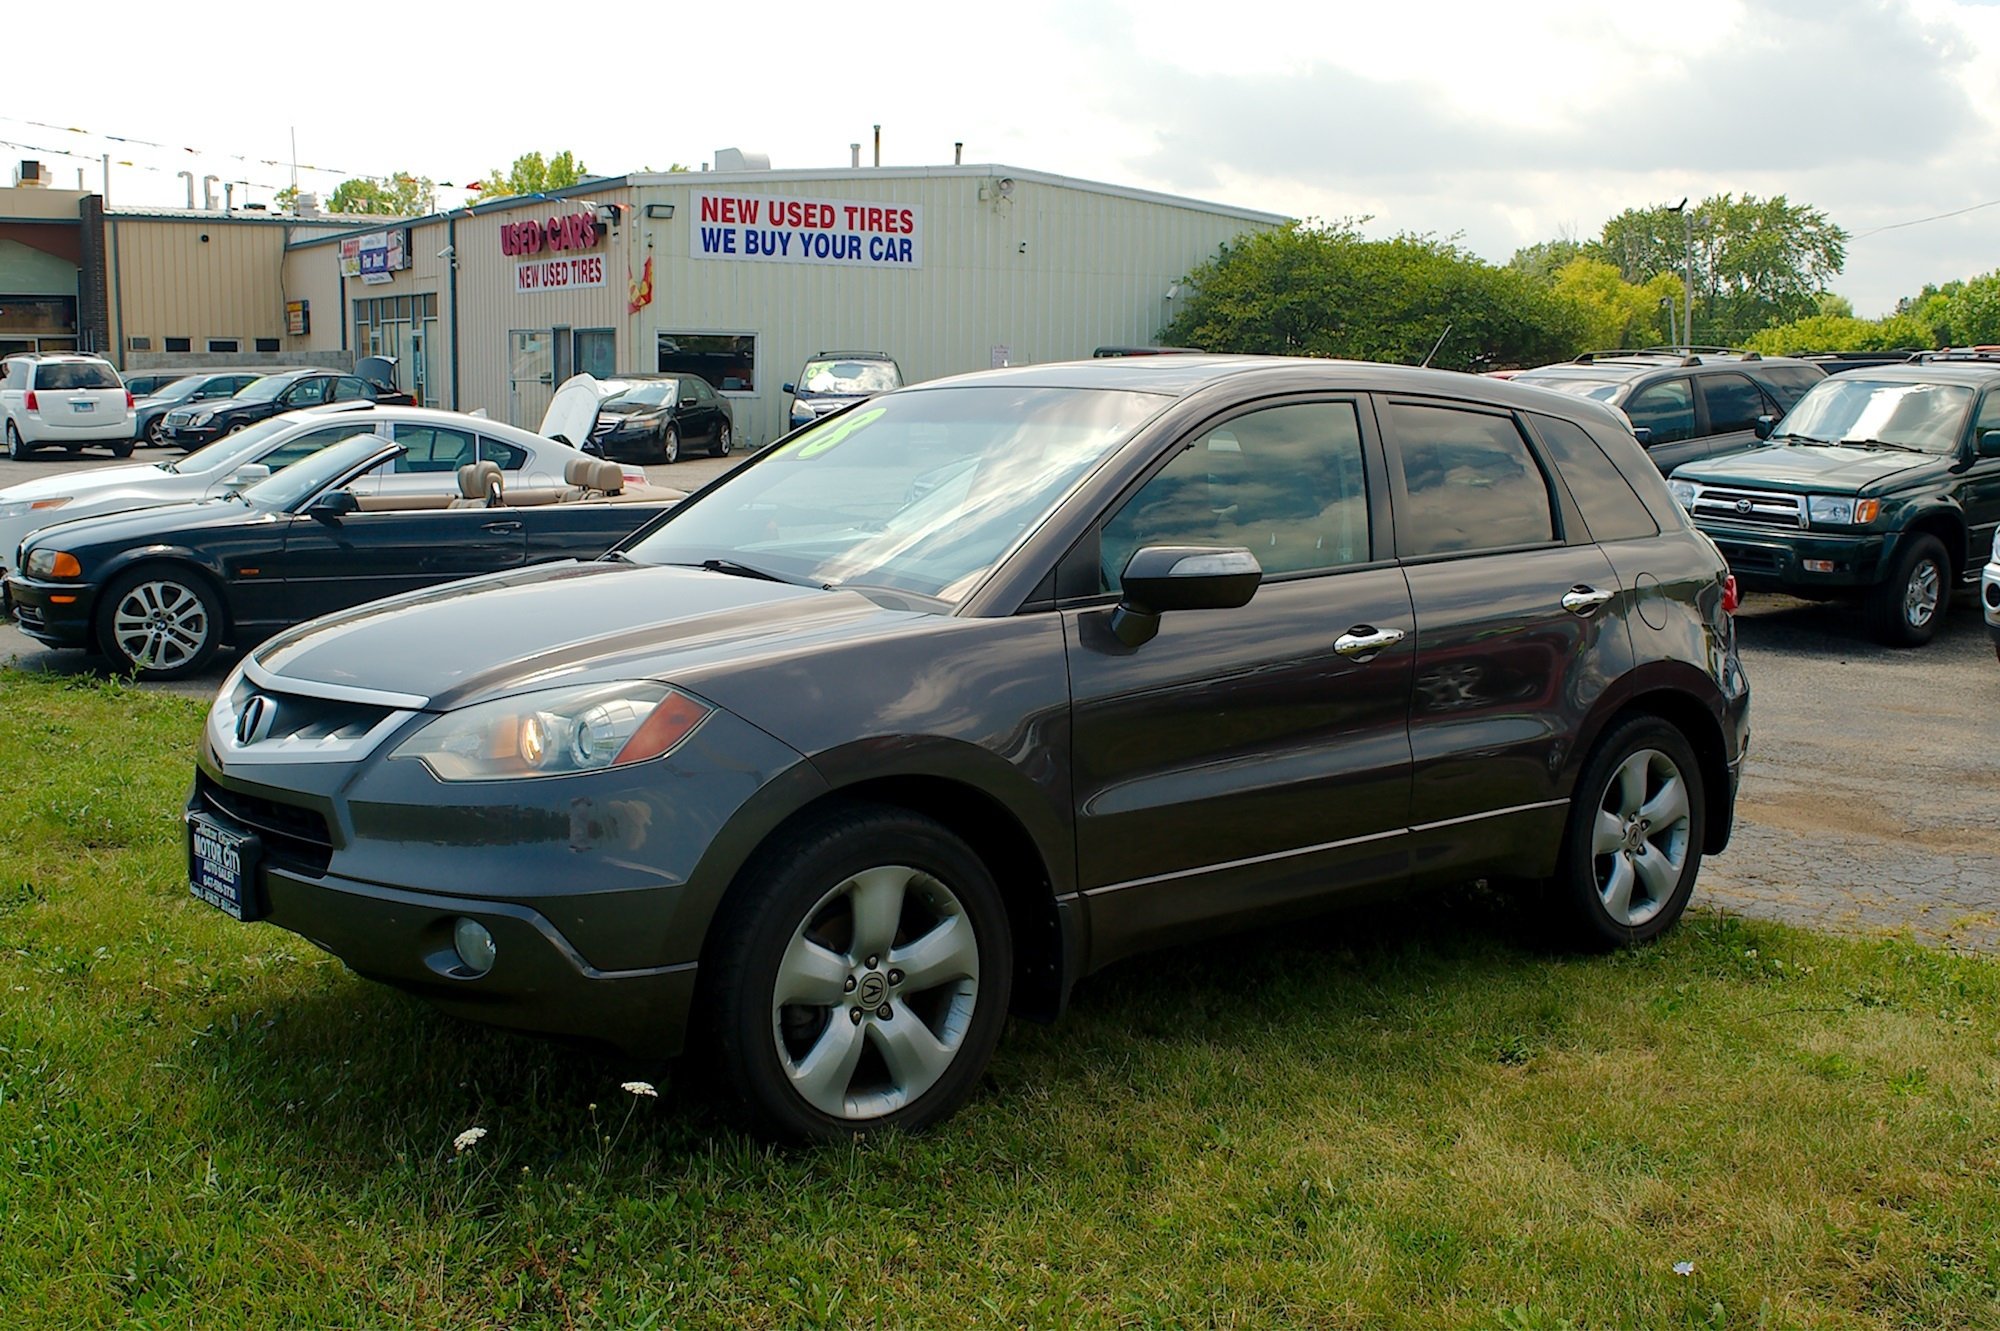 2005 Acura RDX Turbo Gray SUV Sale Antioch Zion Waukegan Lake County Illinois